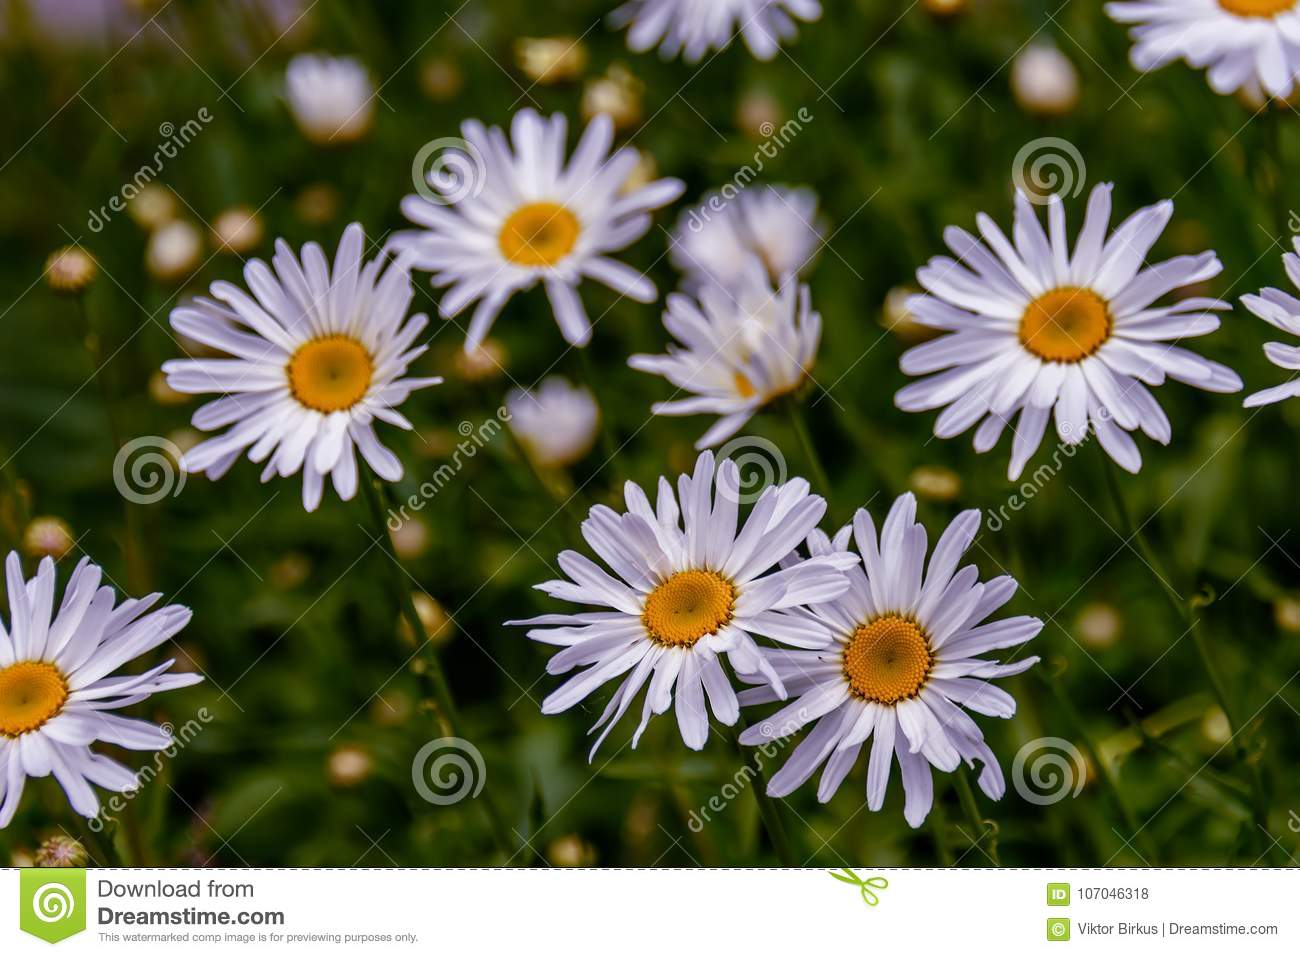 Chamomile Flowers With Long White Petals And A Yellow Center In